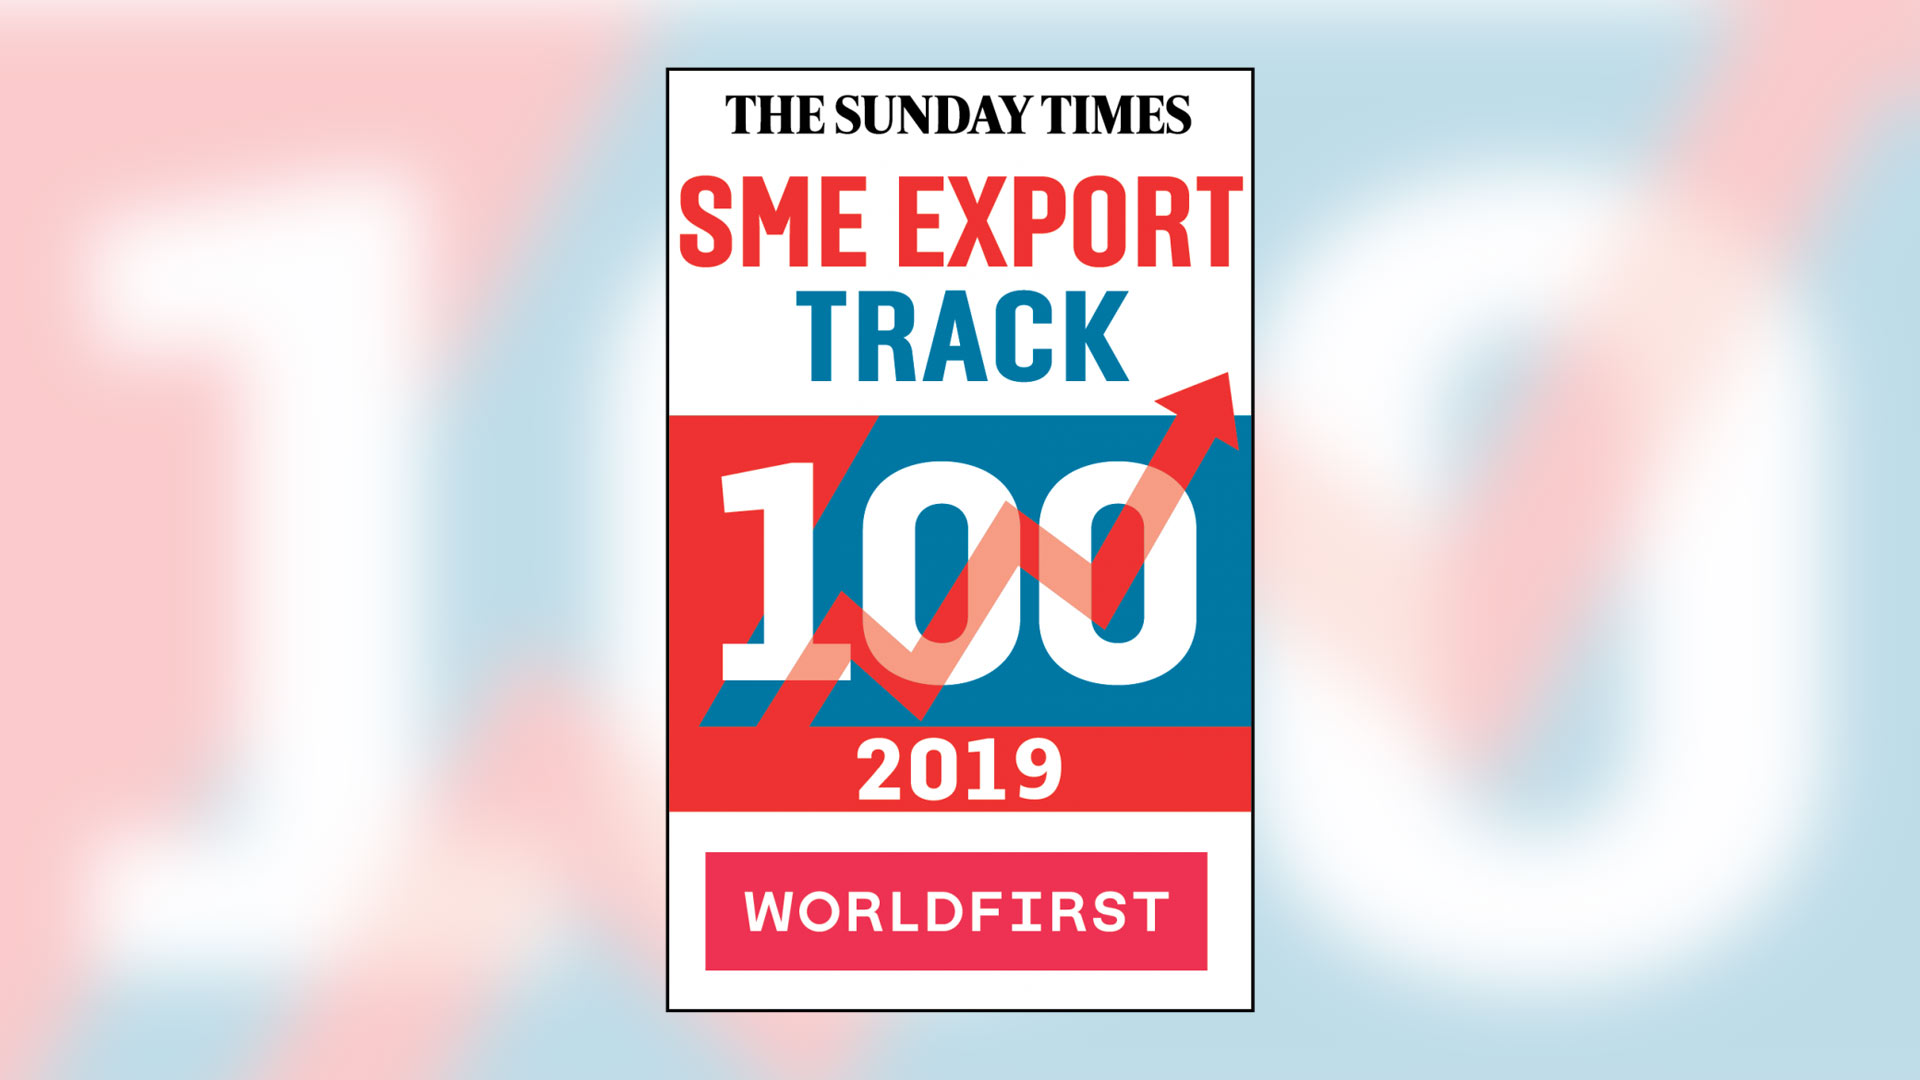 The Sunday Time: SME Export Track